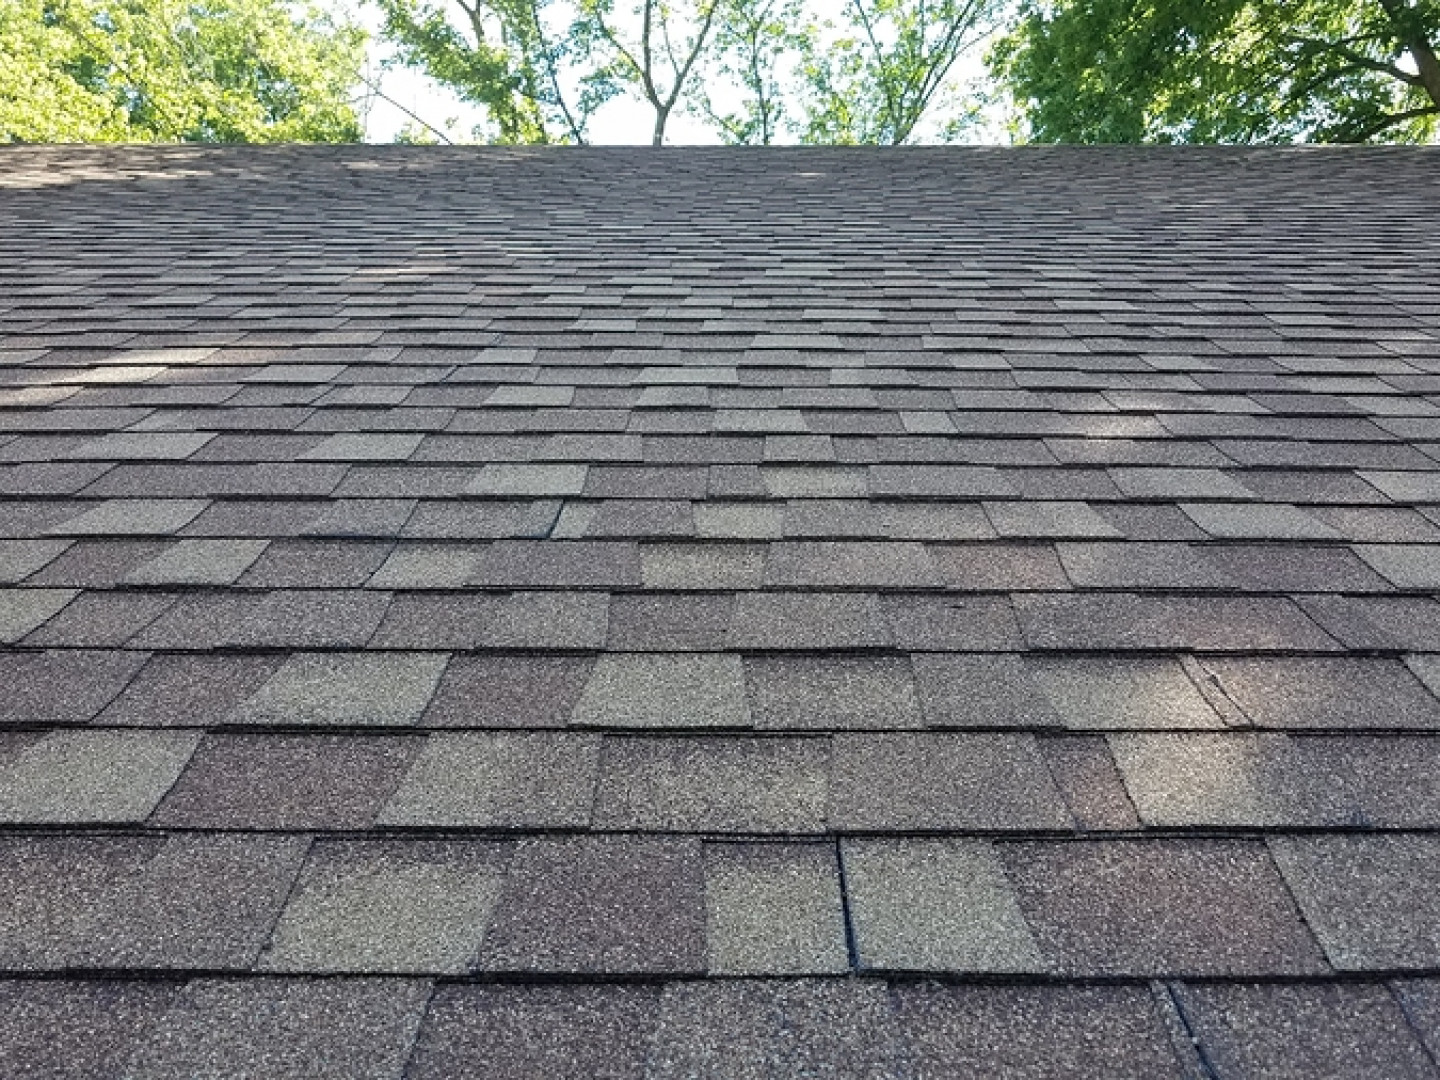 Protect Your Home-Invest in a New Roof